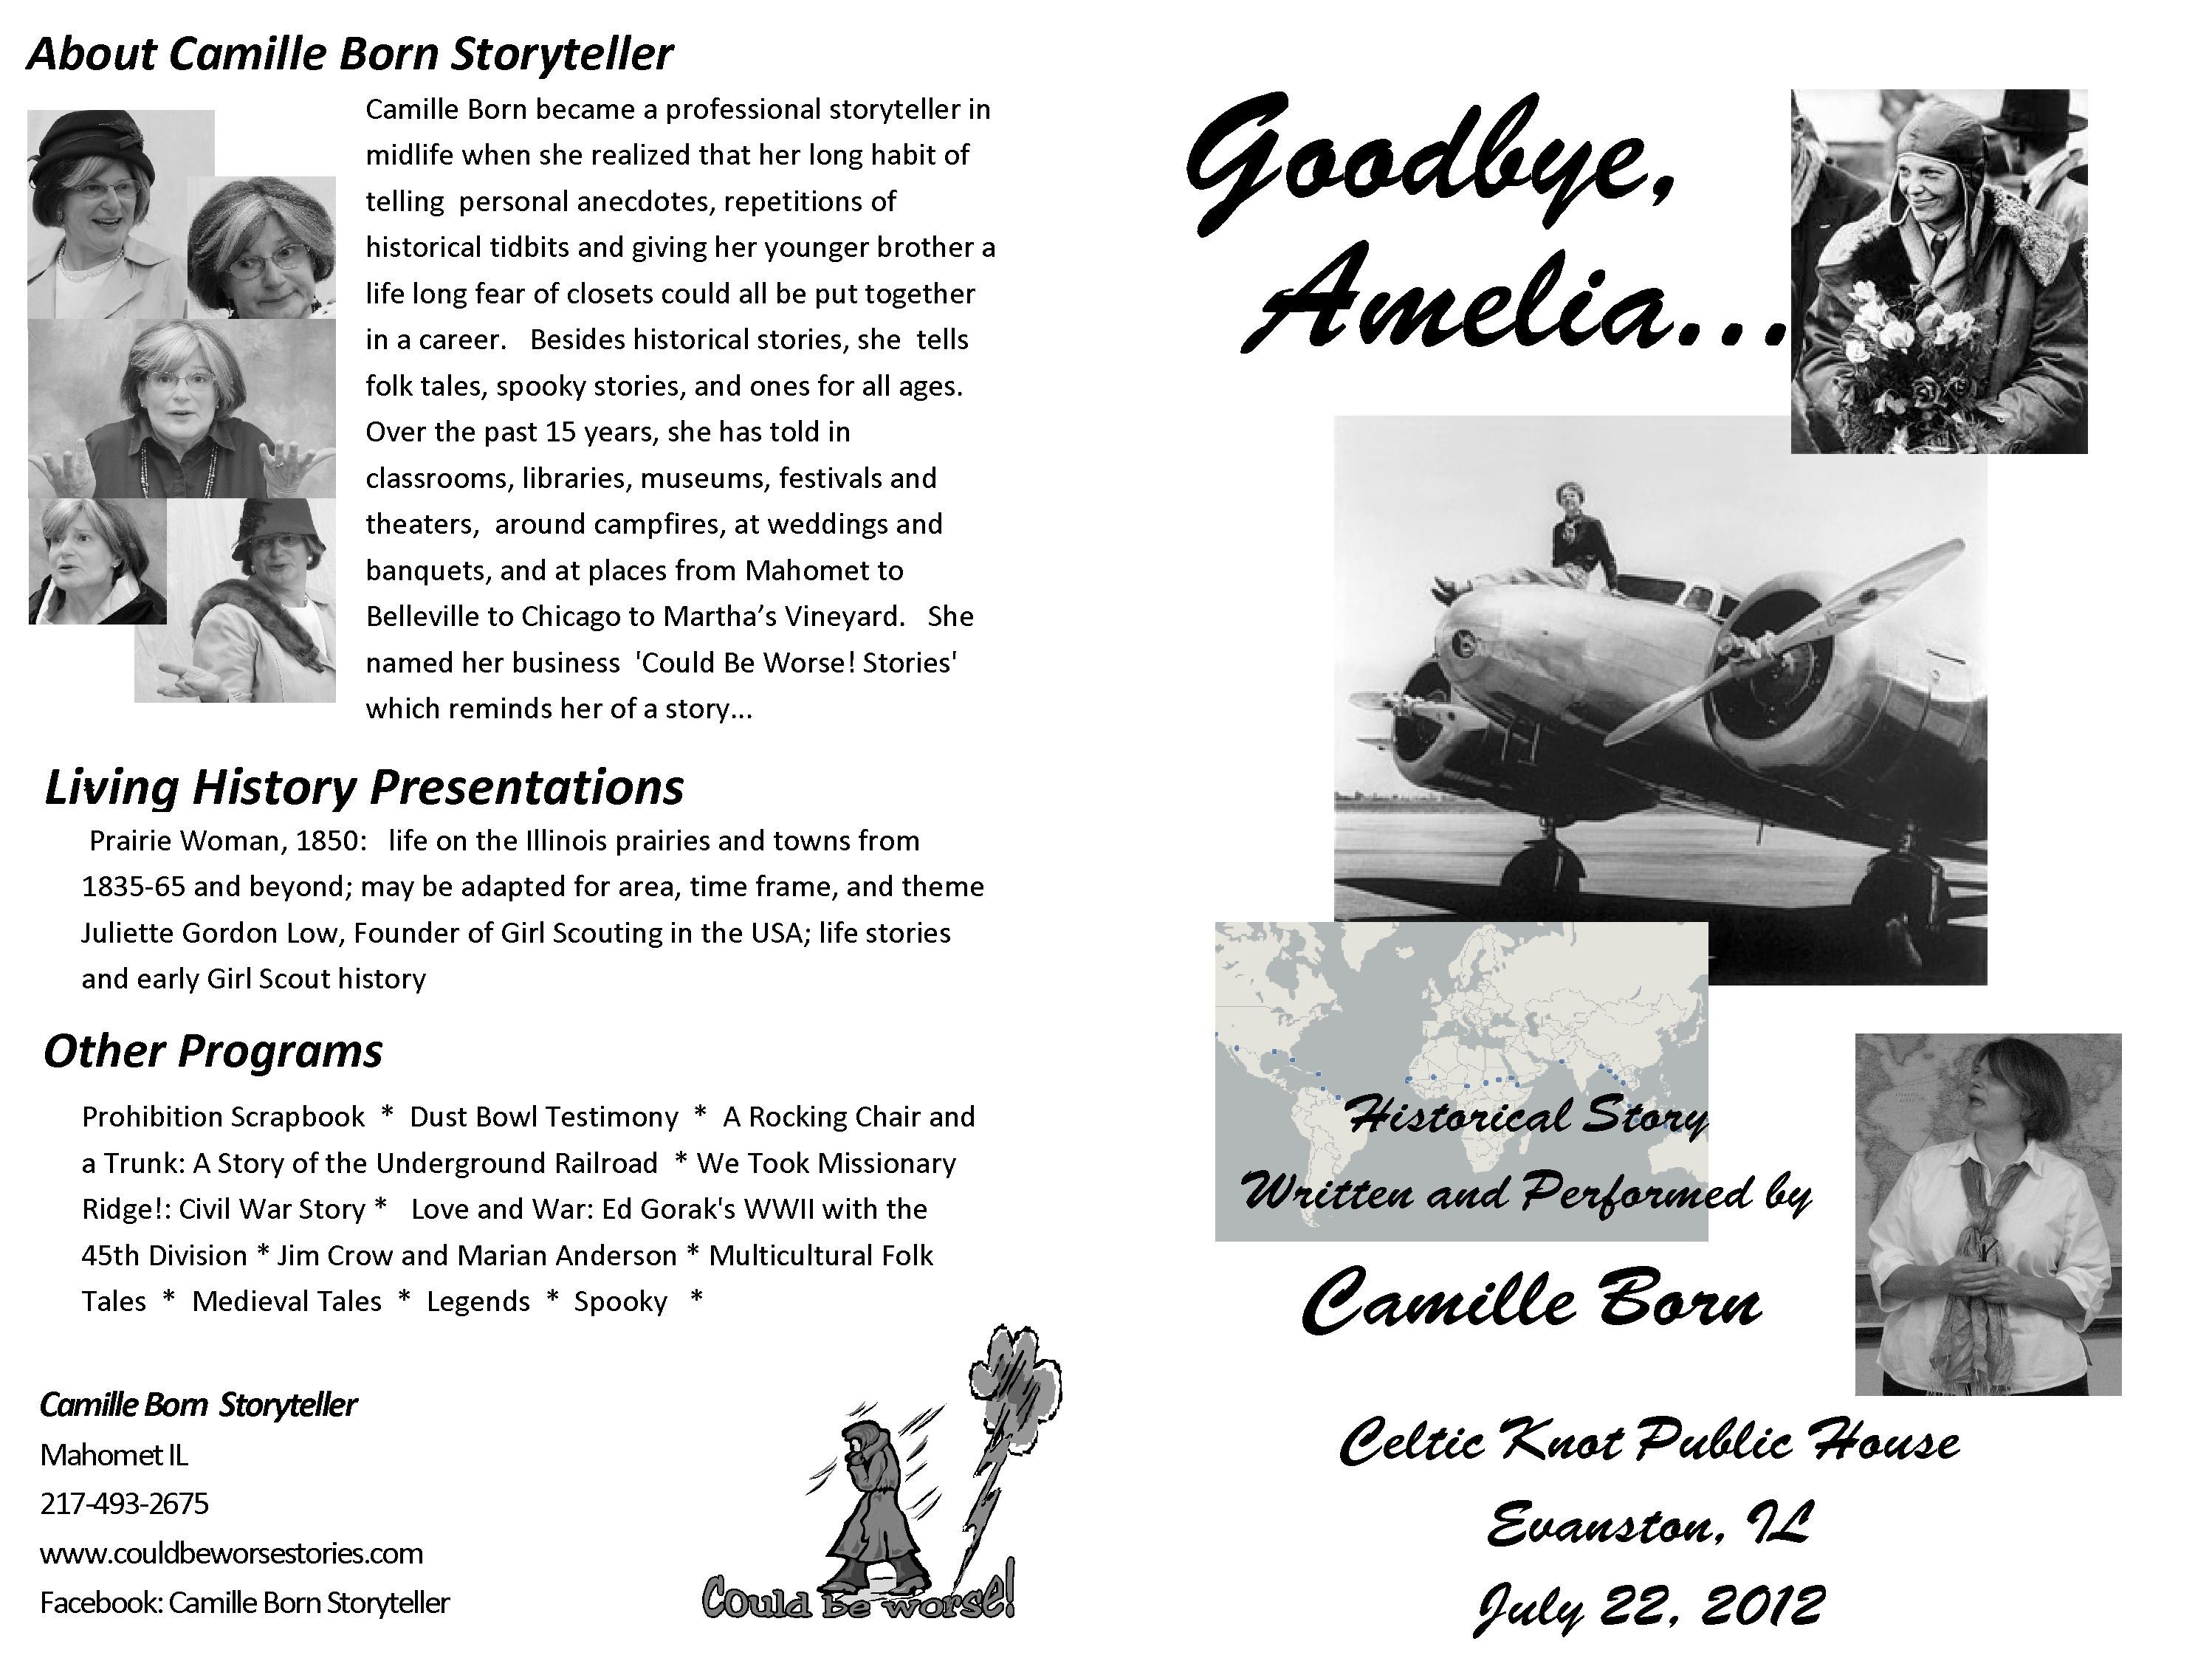 Goodbye Amelia Program For Story Of Life And Times Of